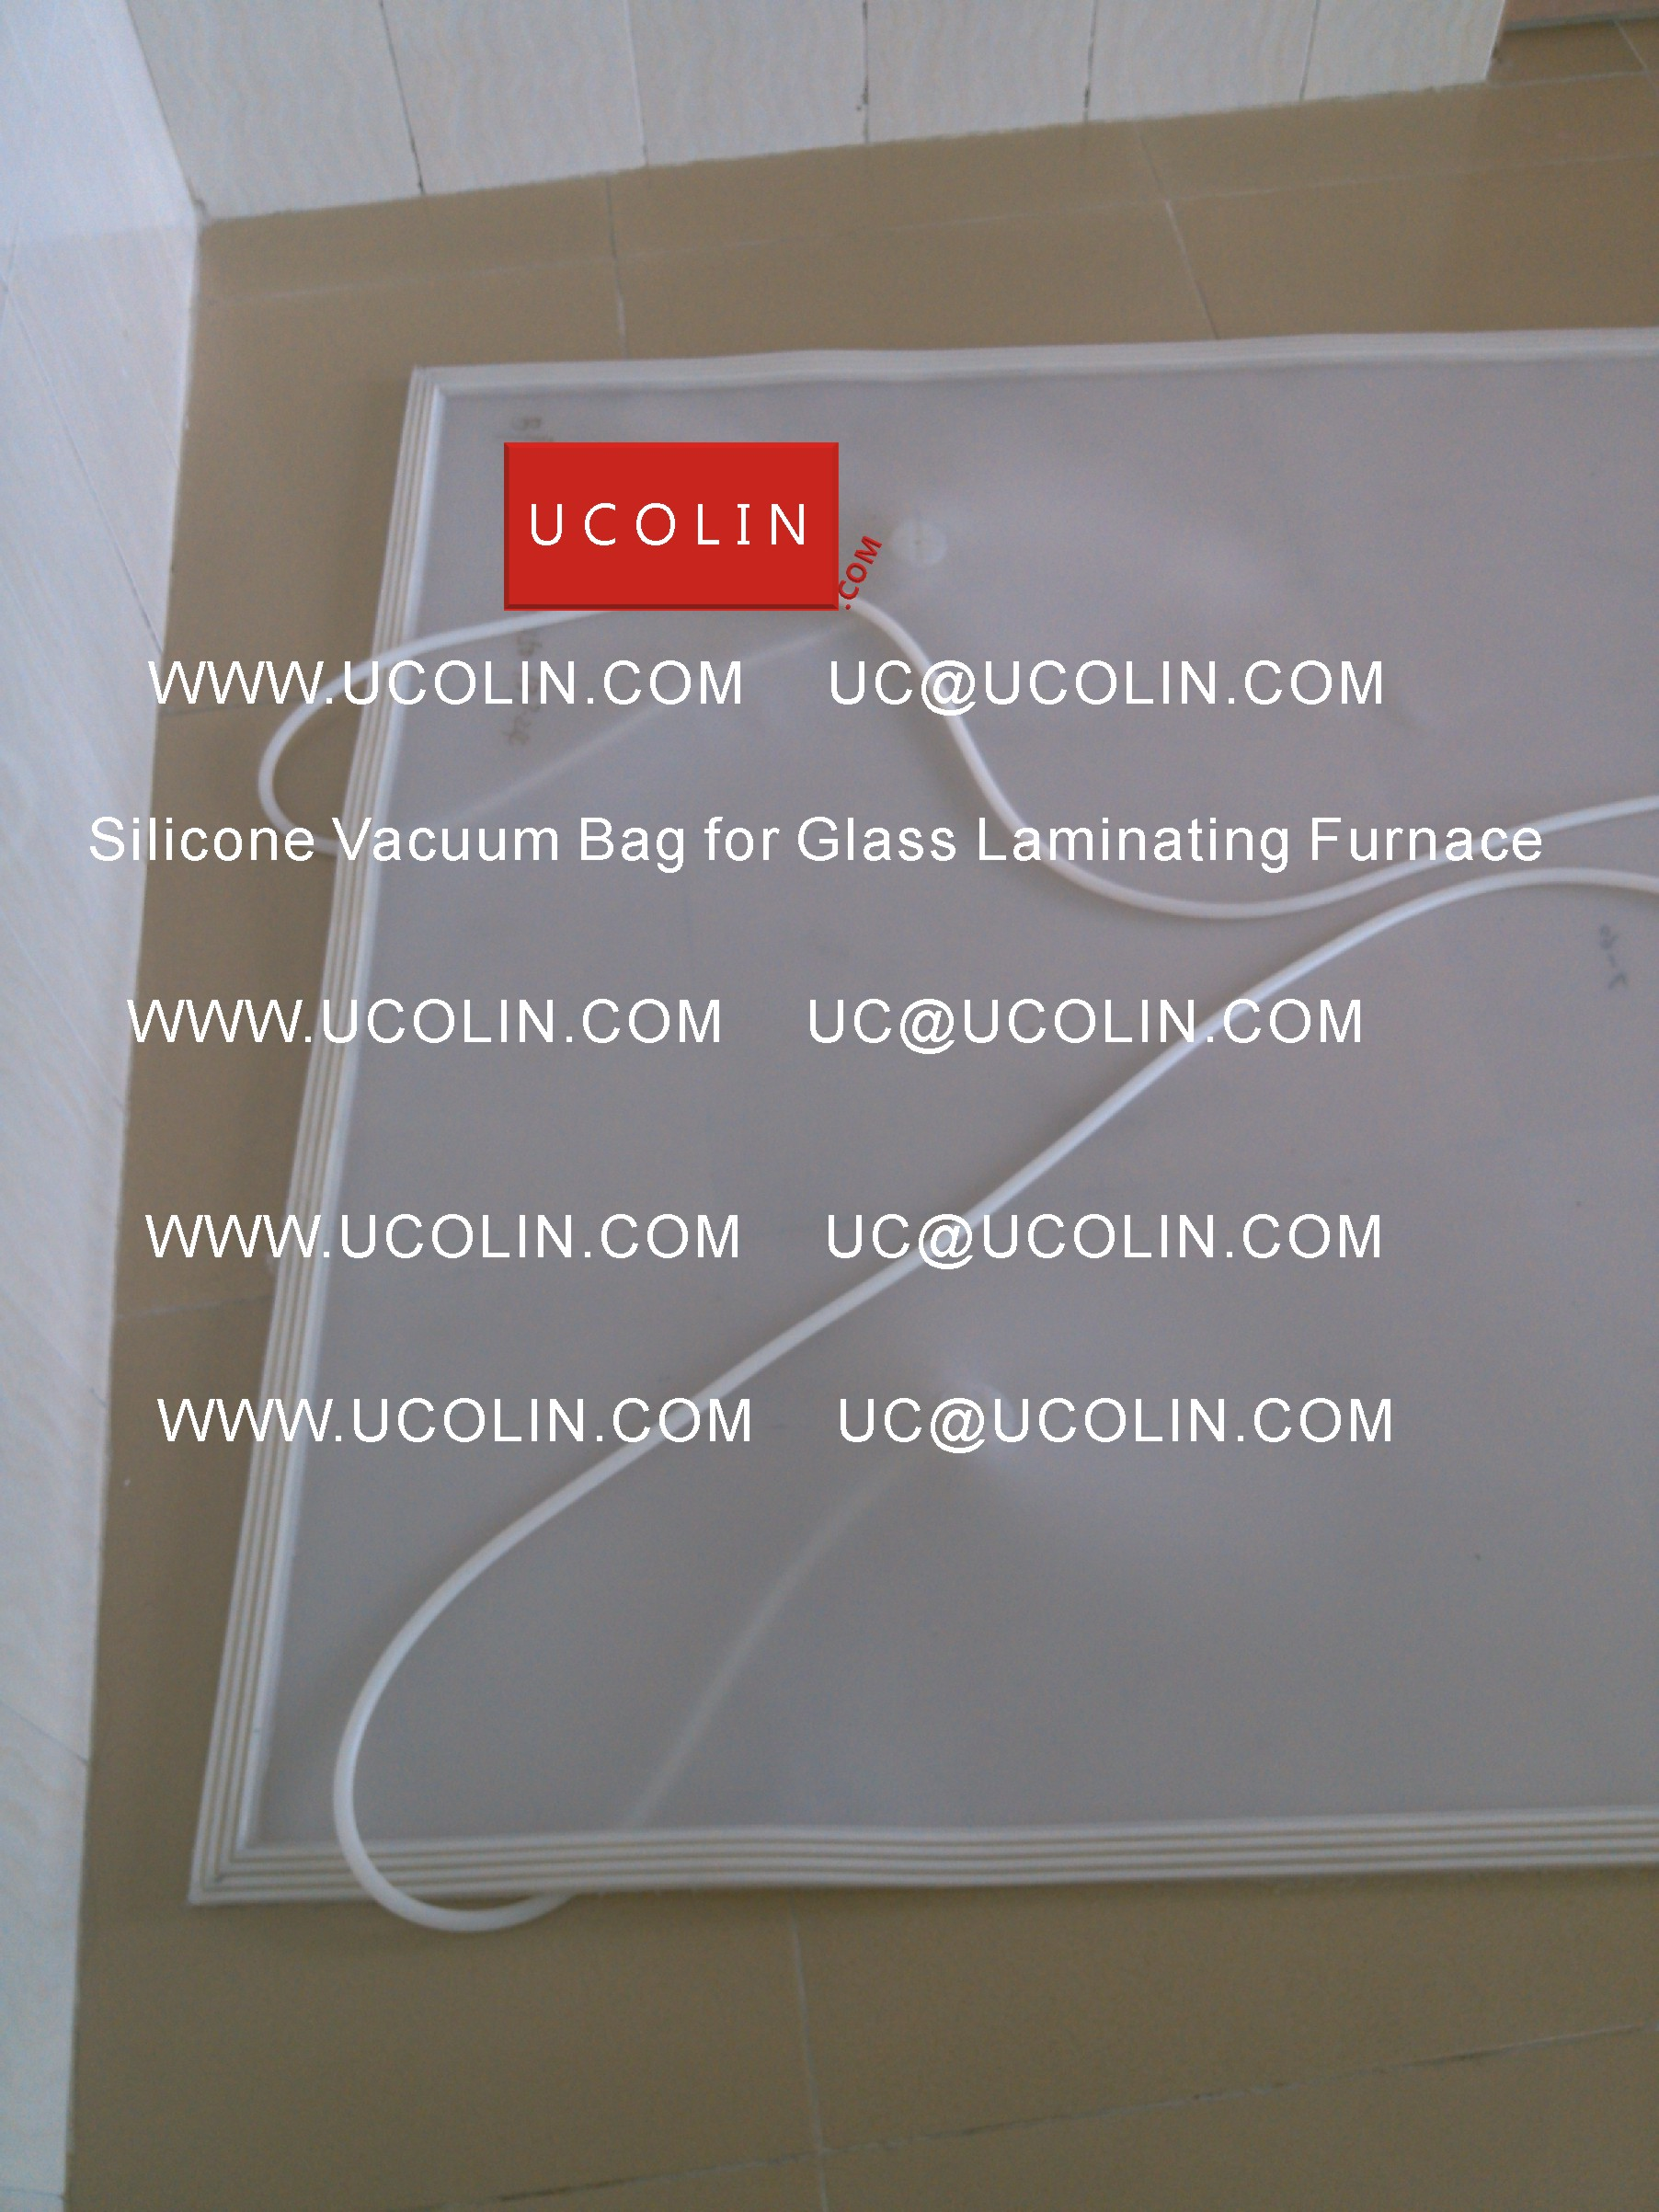 03 Silicone Vacuum Bag for Safety Glass Laminating Furnace